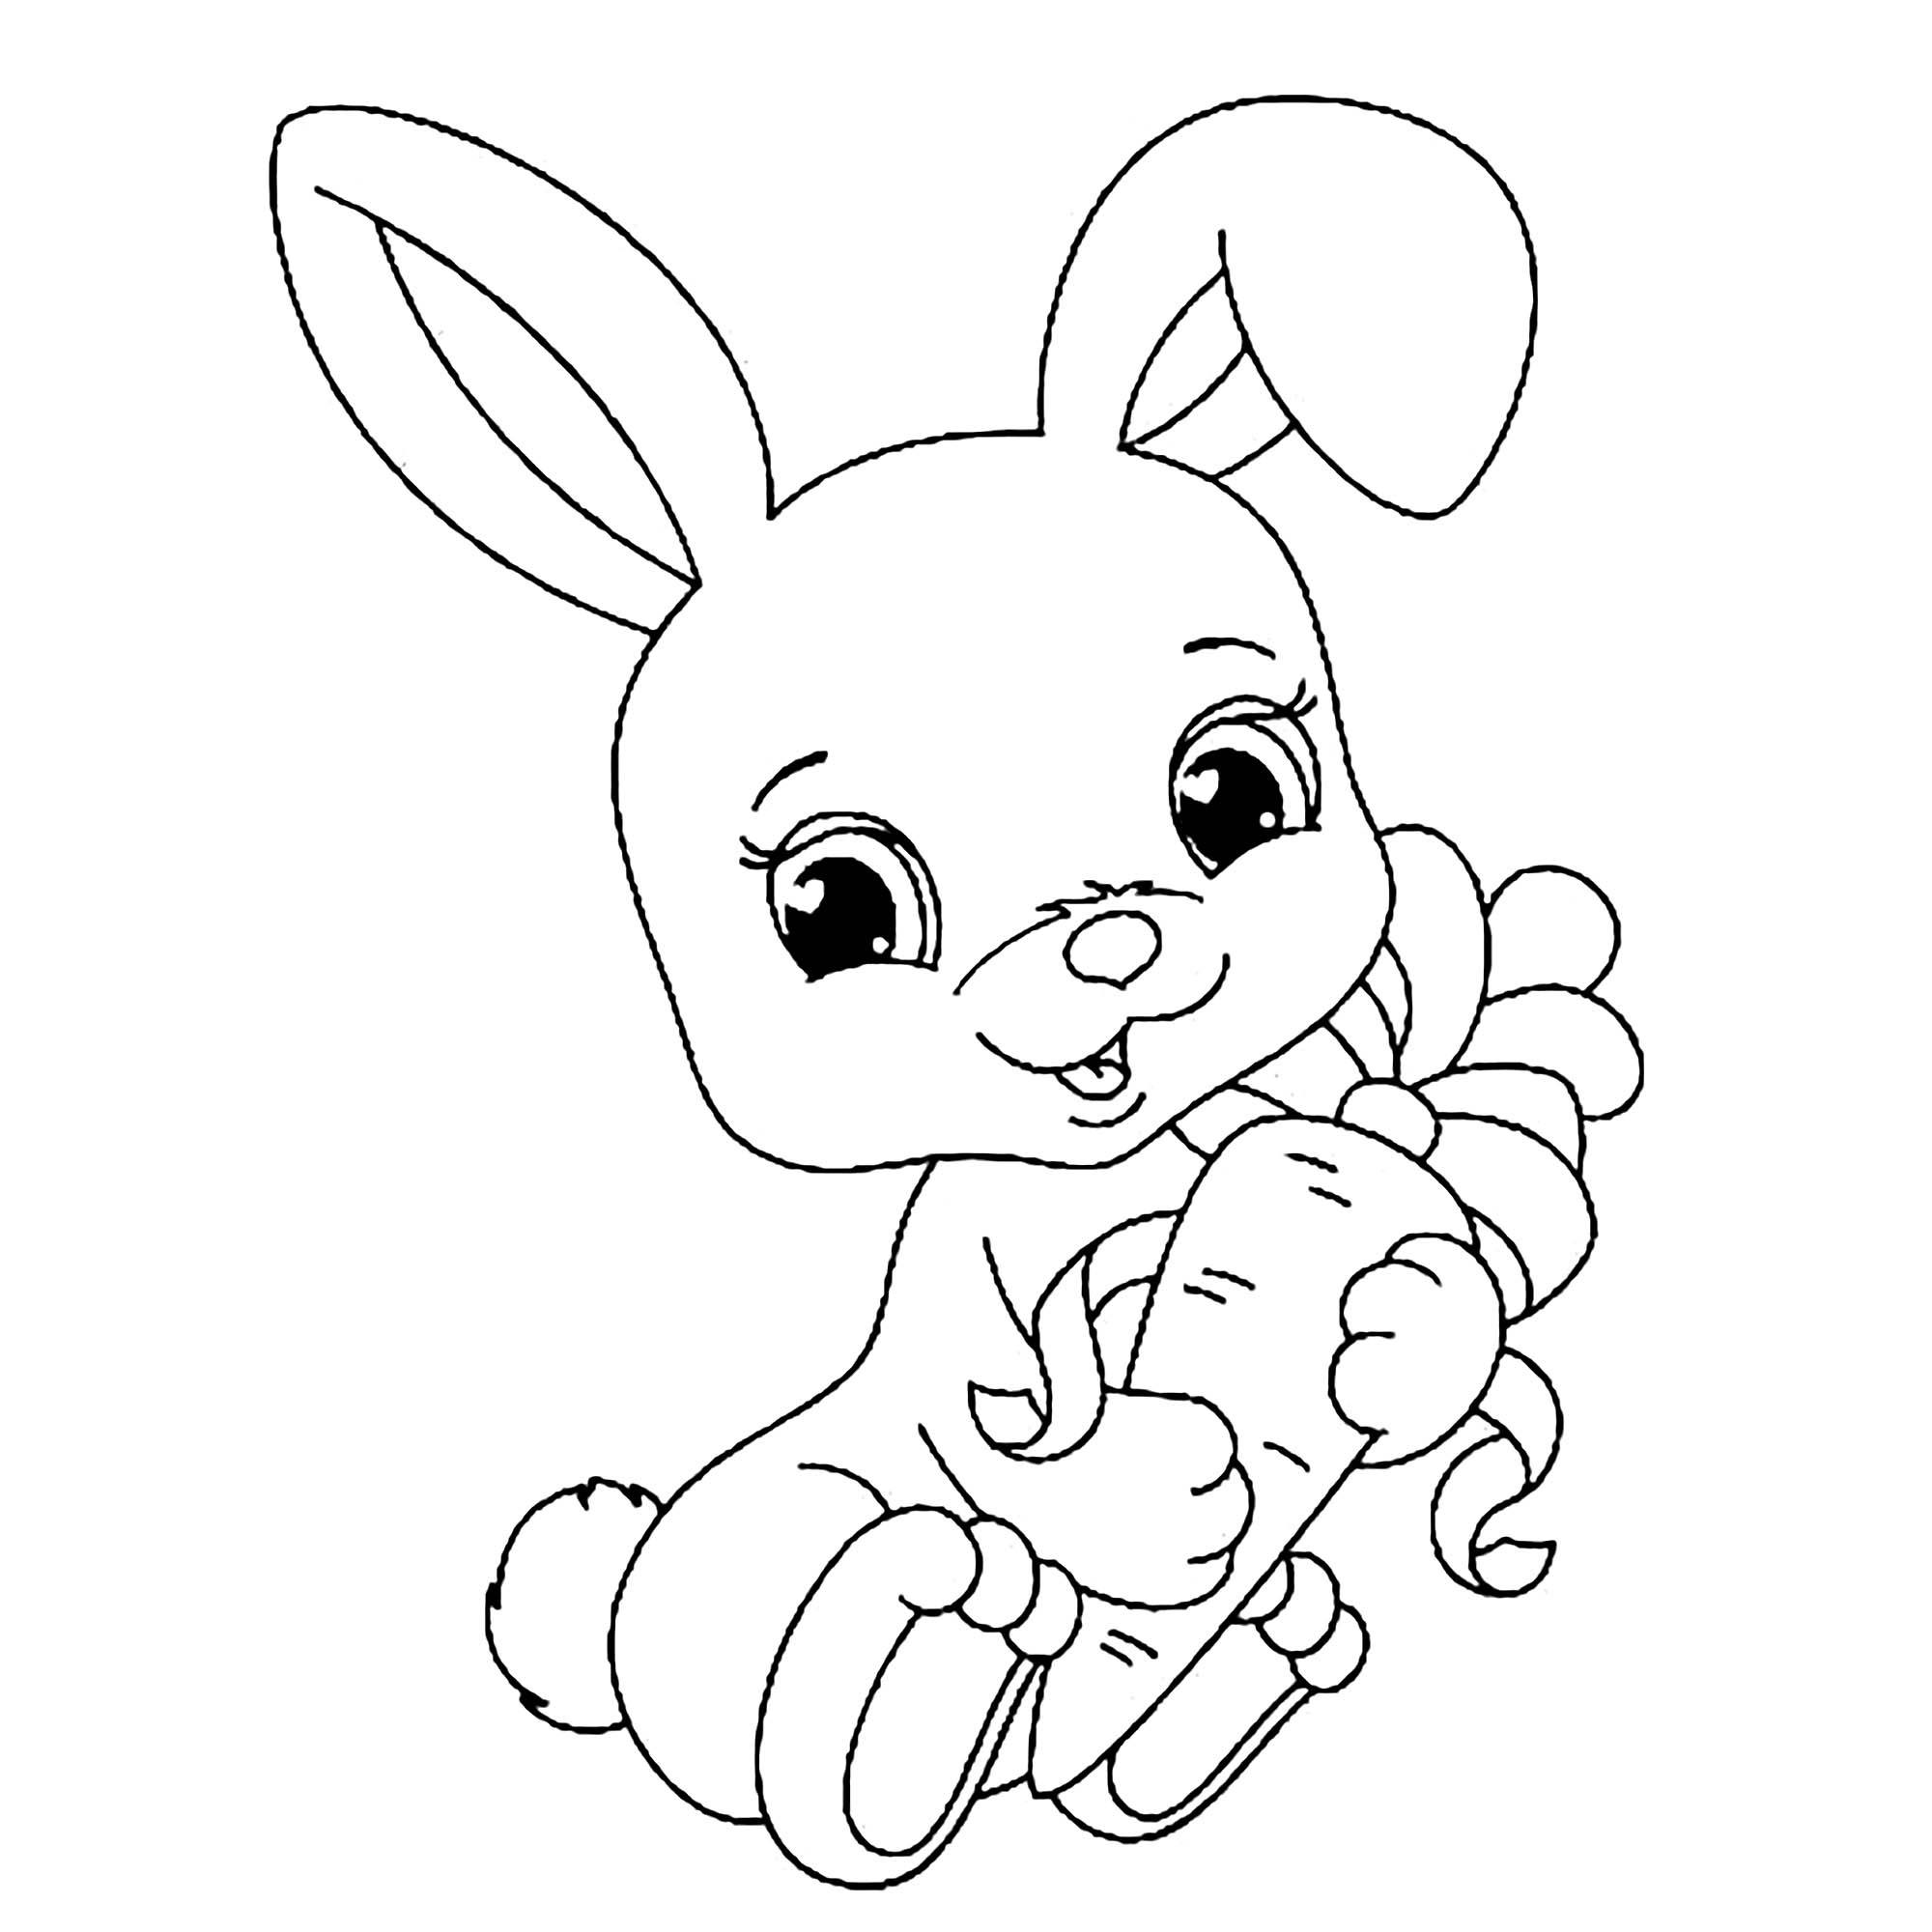 bunny coloring picture bunny coloring pages best coloring pages for kids bunny picture coloring